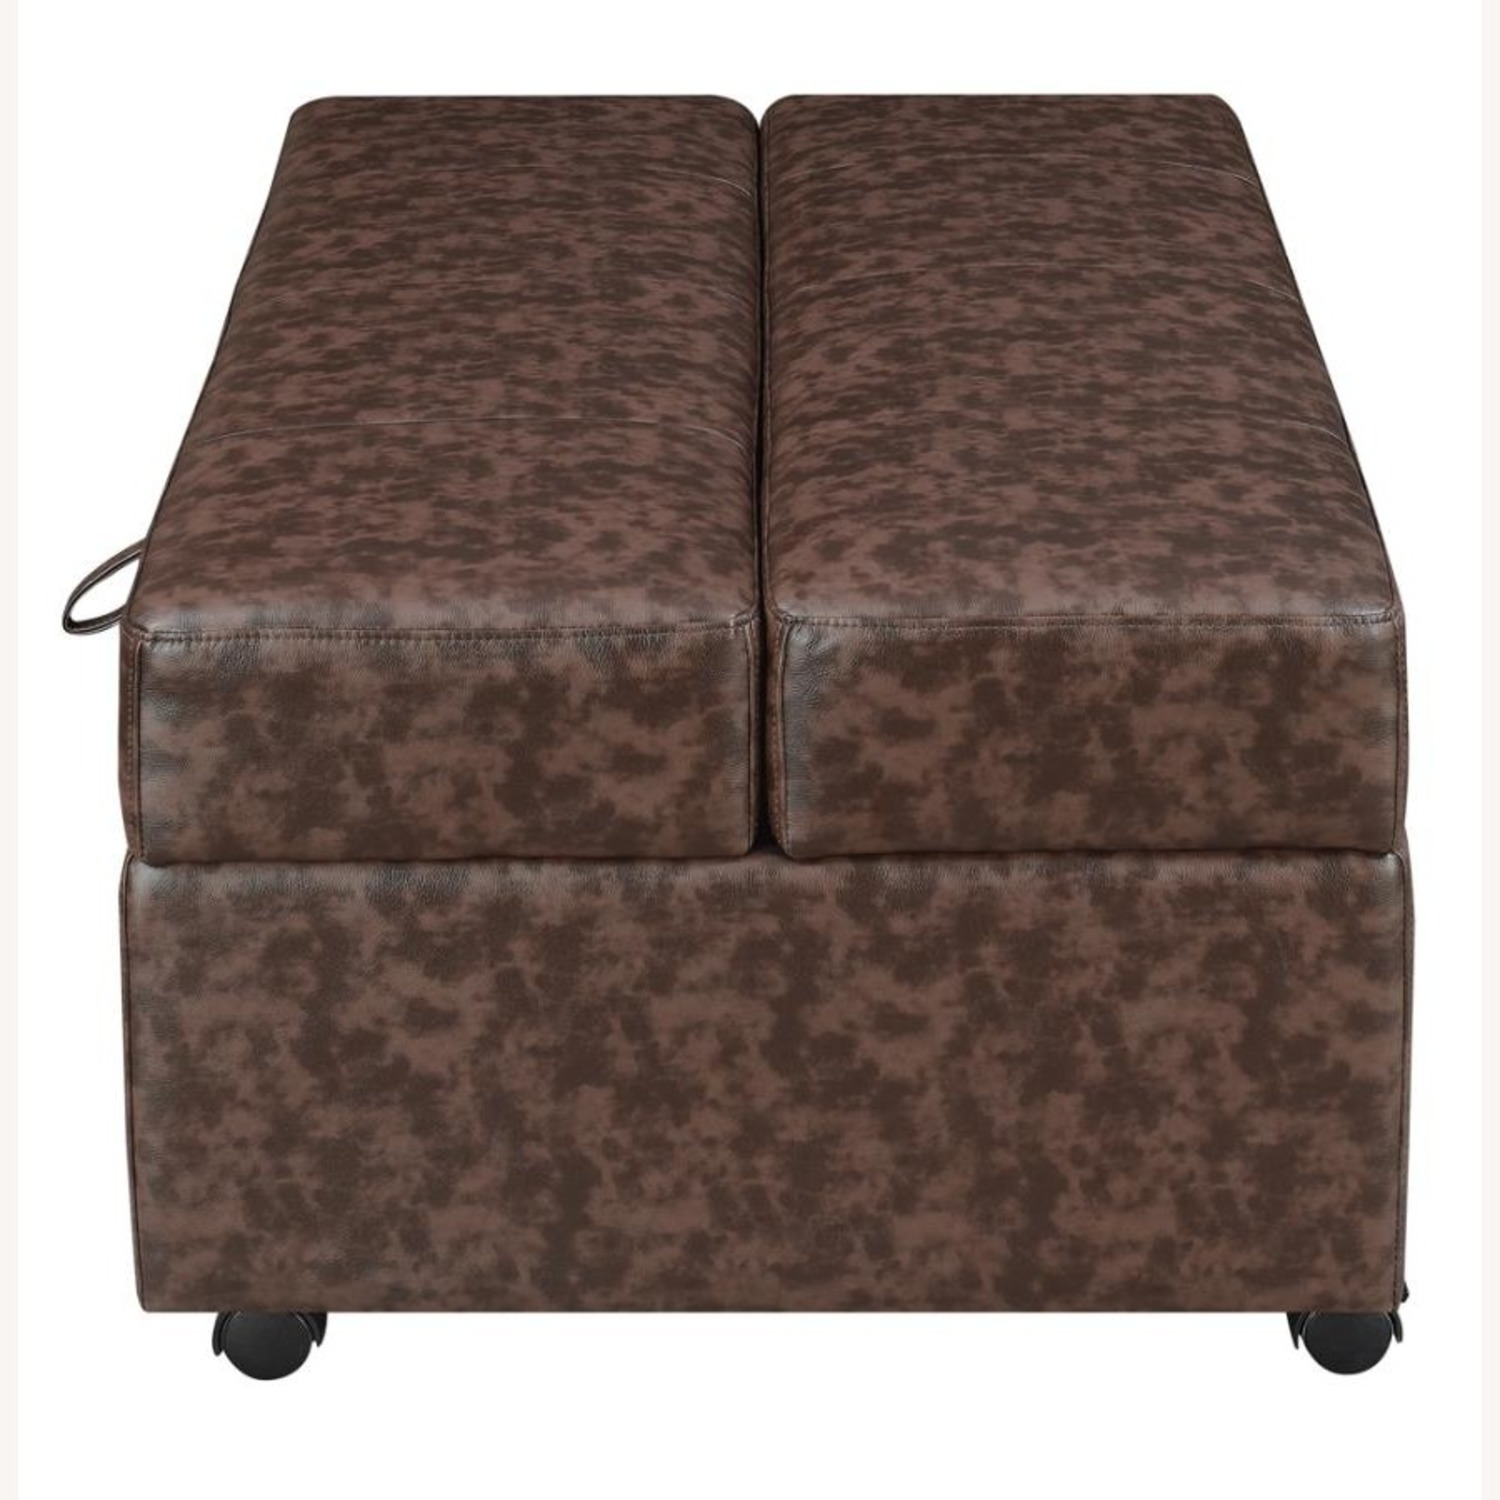 Multi-Functional Ottoman In Dark Brown Leatherette - image-2